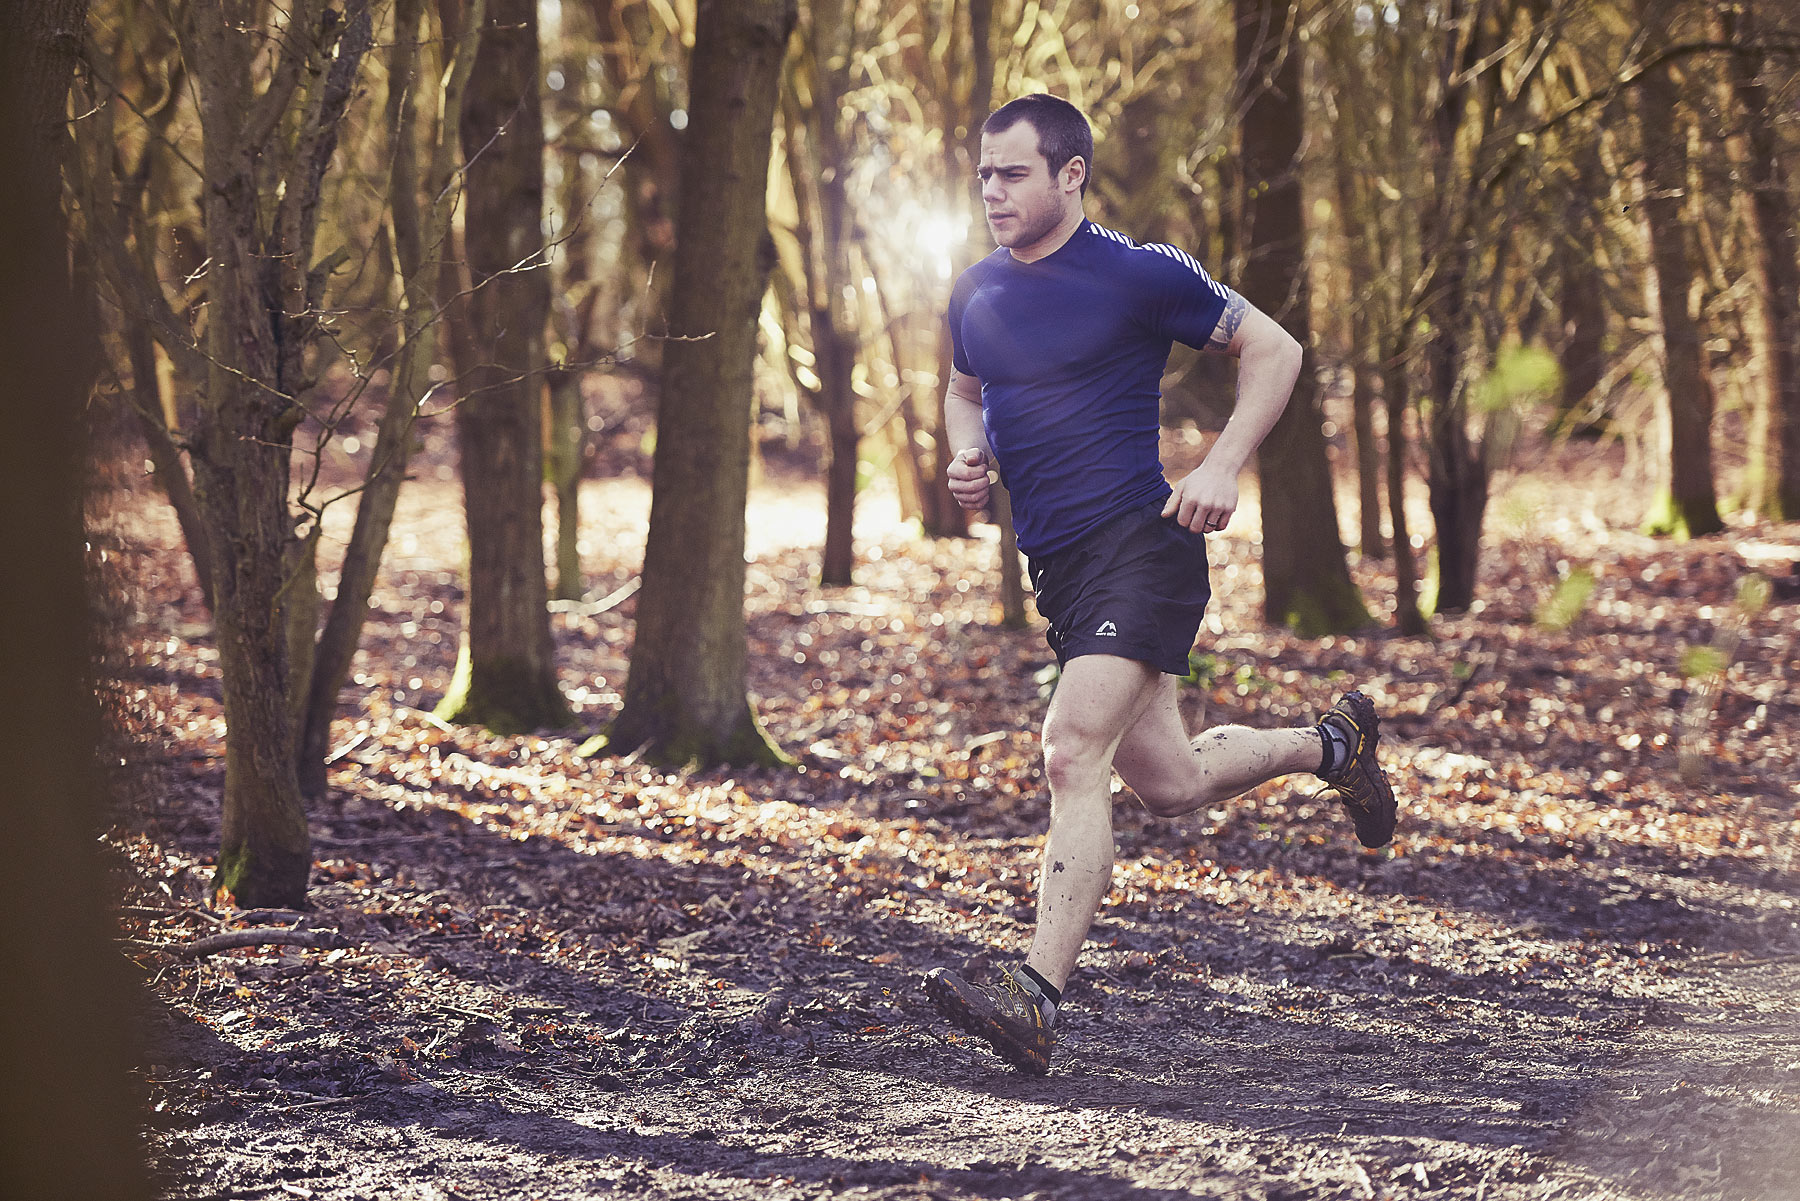 Man running through an Autumnal forest